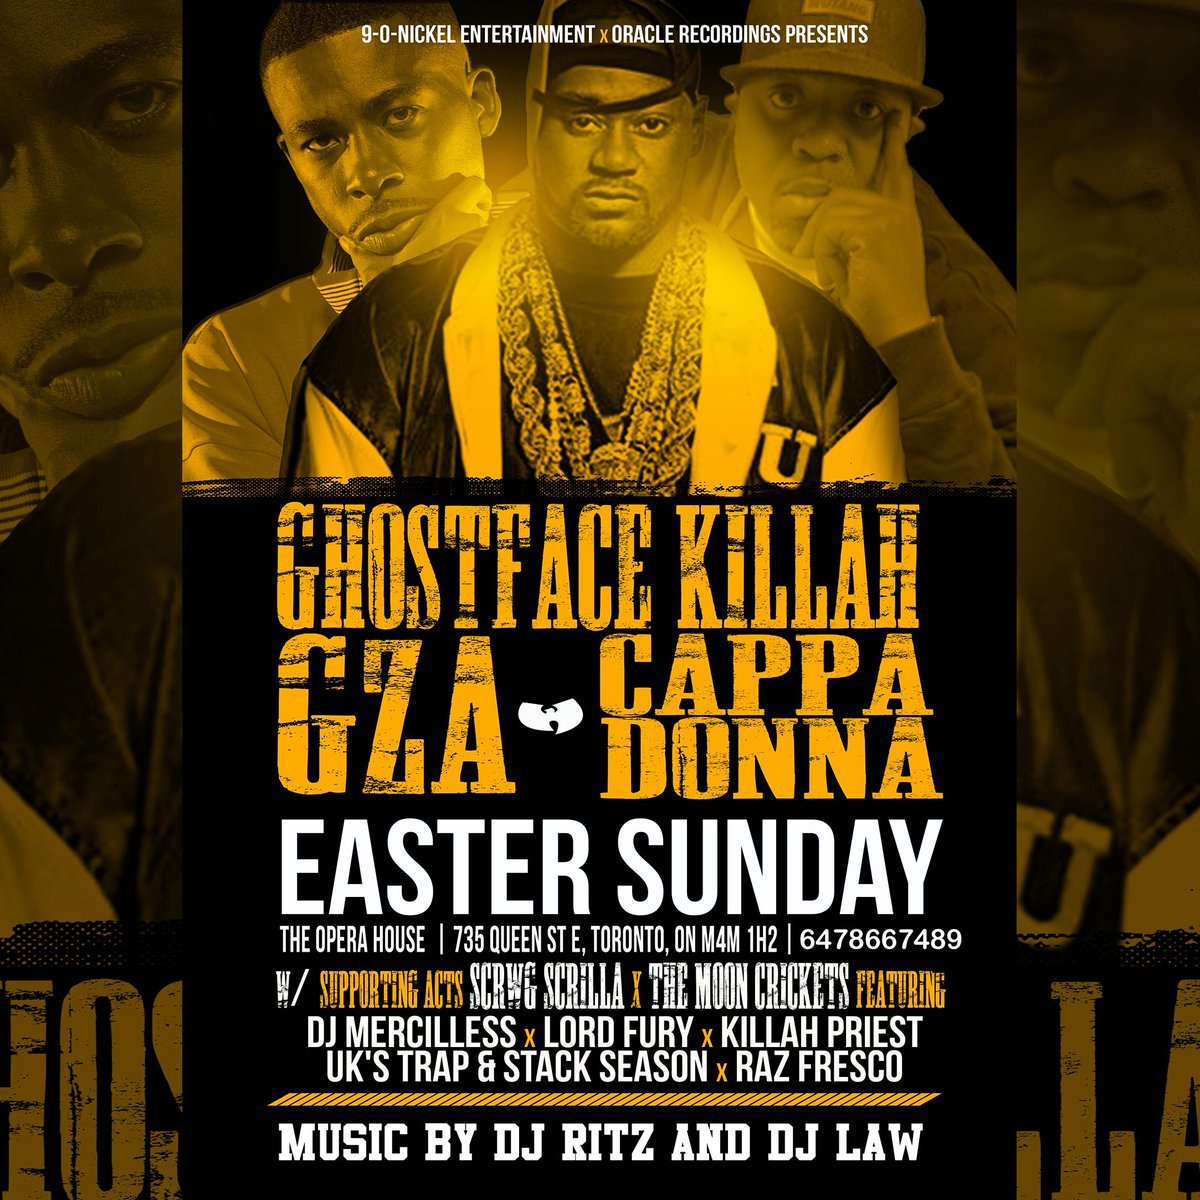 GHOSTFACE / GZA / CAPPADONNA LIVE EASTER SUNDAY INSIDE THE OPERA HOUSE HIT ME FOR TICKETS 6478667489 http://t.co/gLeogYBvW6